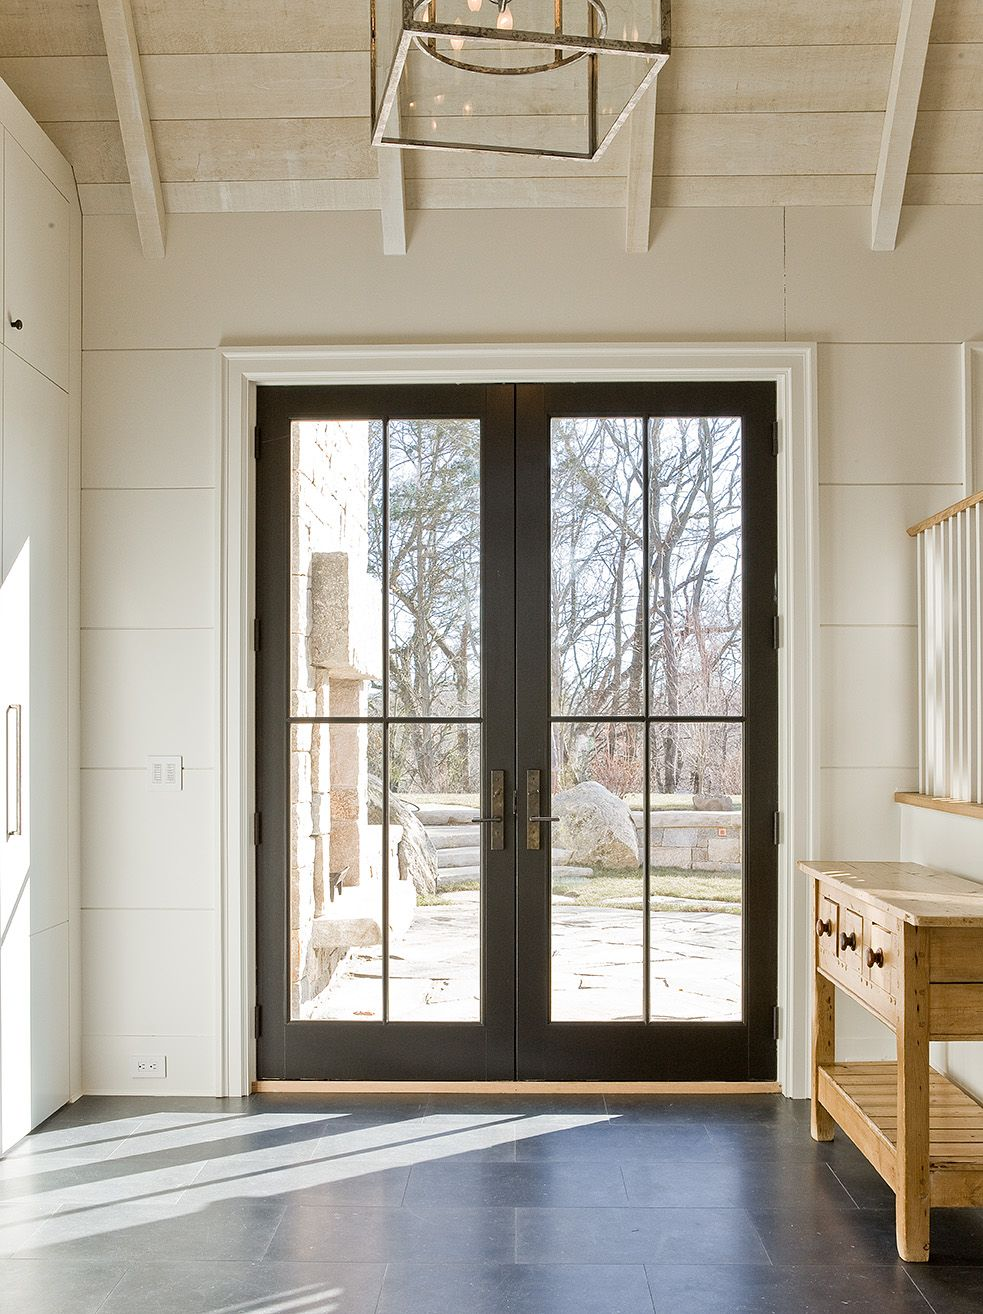 48 inch interior french doors lowes on shop talk new store mood boards studio mcgee french doors exterior french doors patio french doors french doors exterior